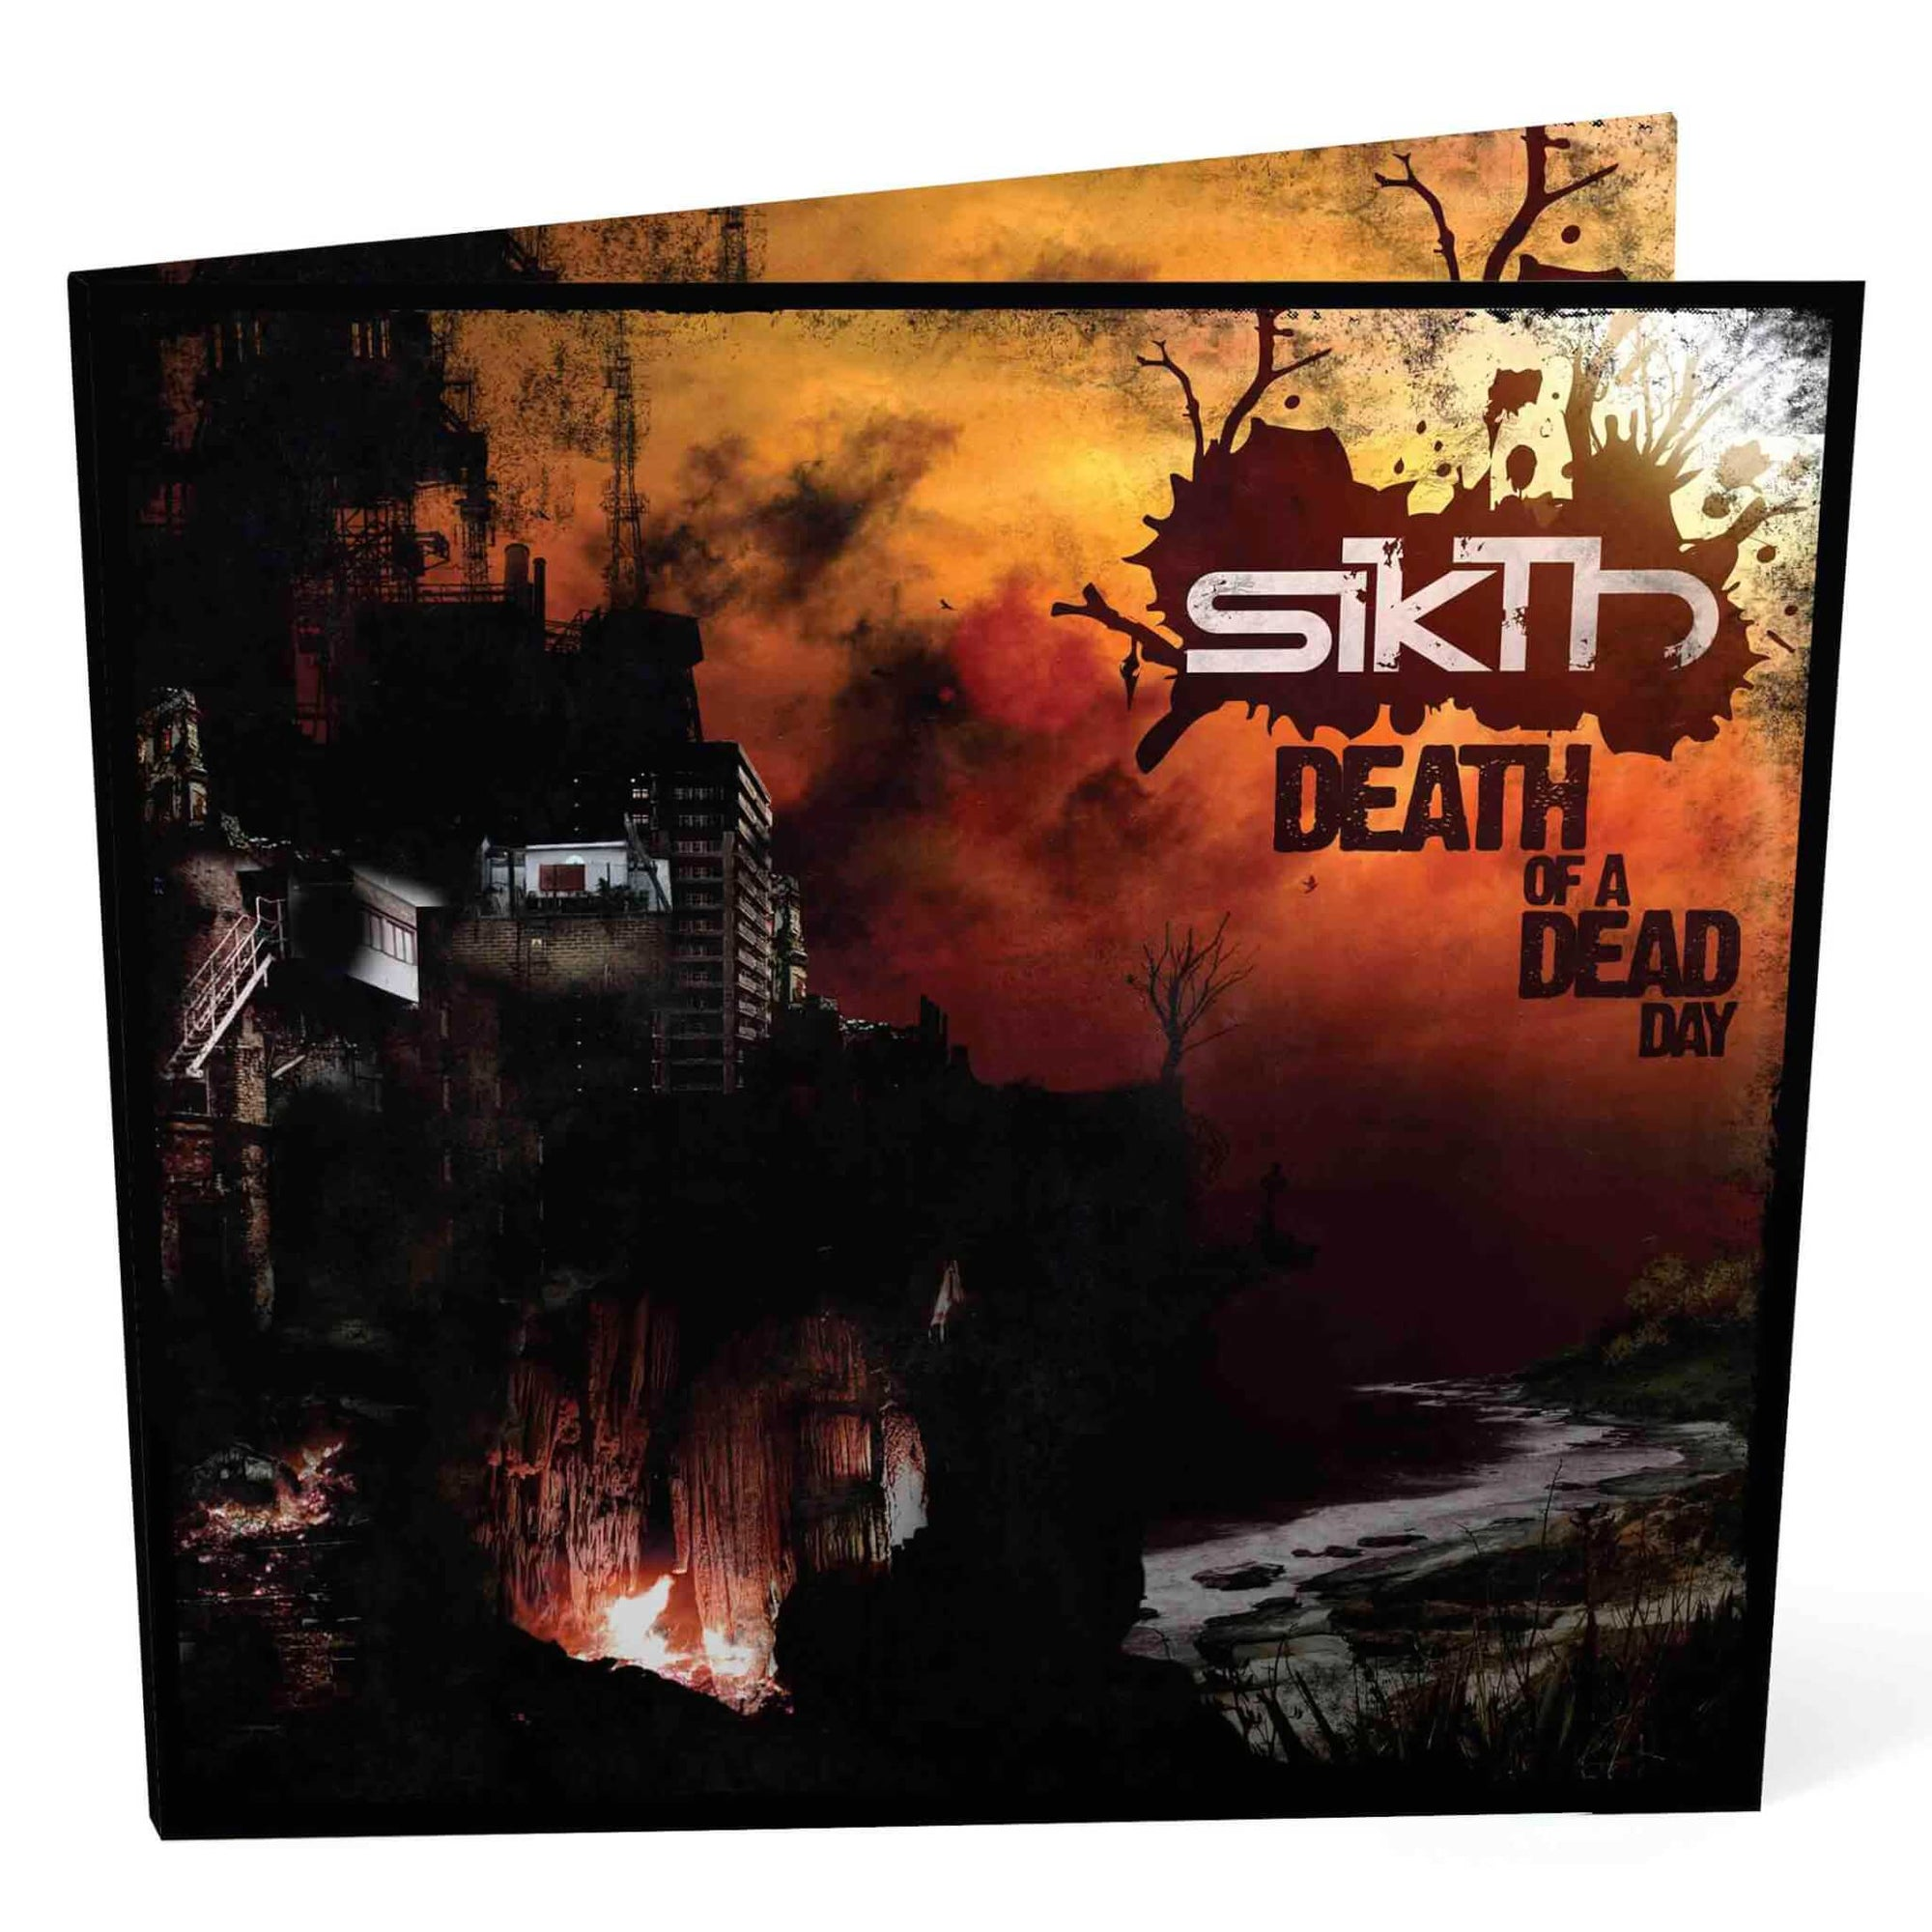 SIKTH // DEATH OF A DEAD DAY - DIGIPAK CD (10TH ANNIVERSARY EDITION) - Wild Thing Records